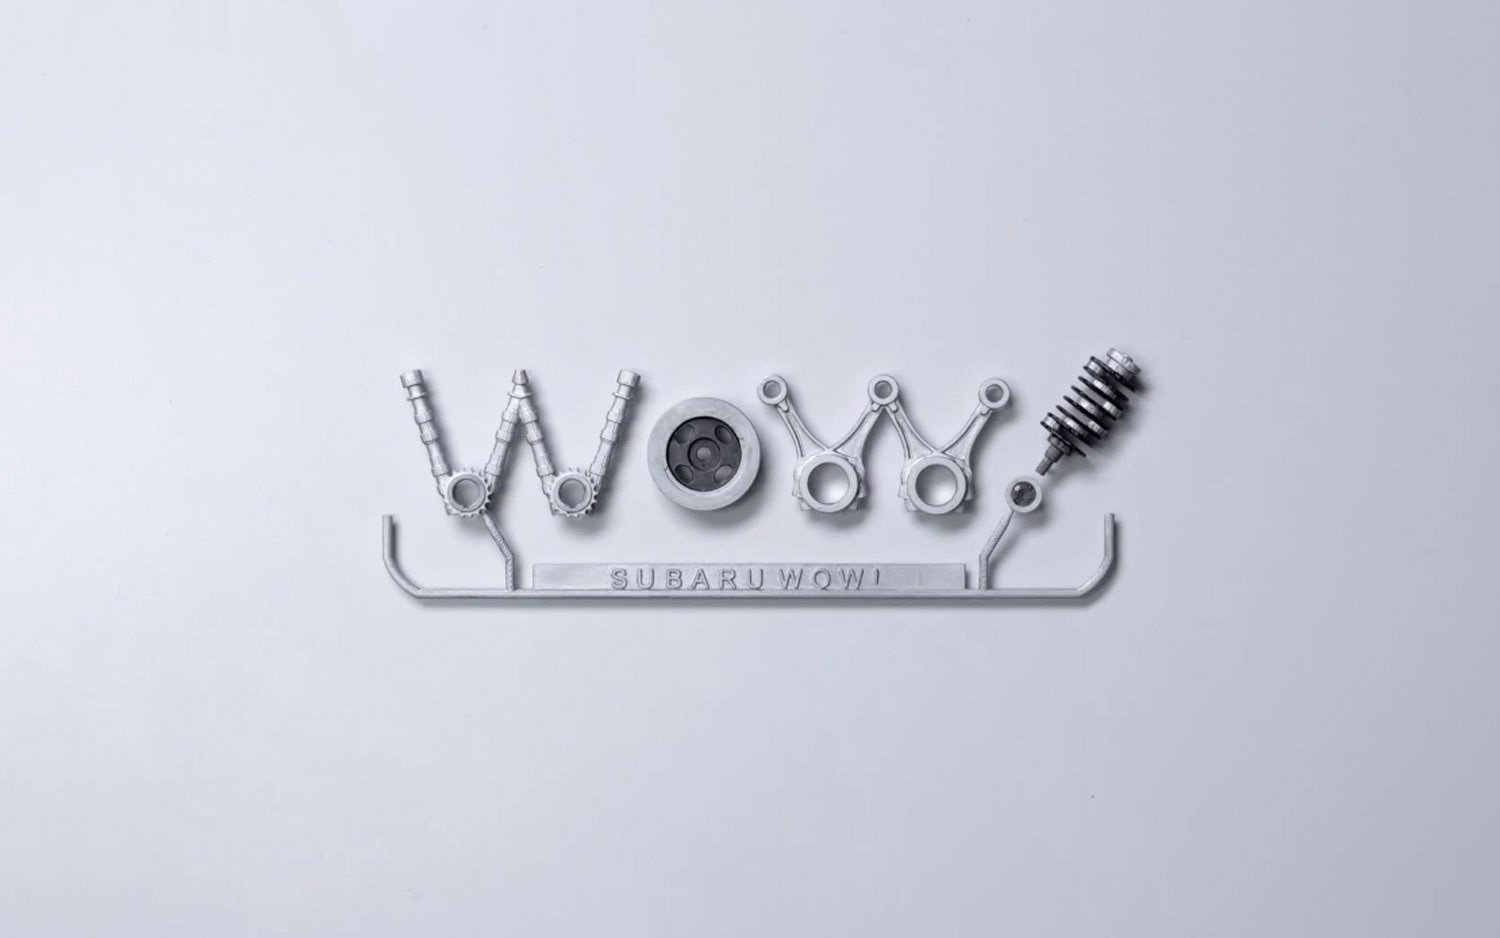 Subaru Wow Title Card1